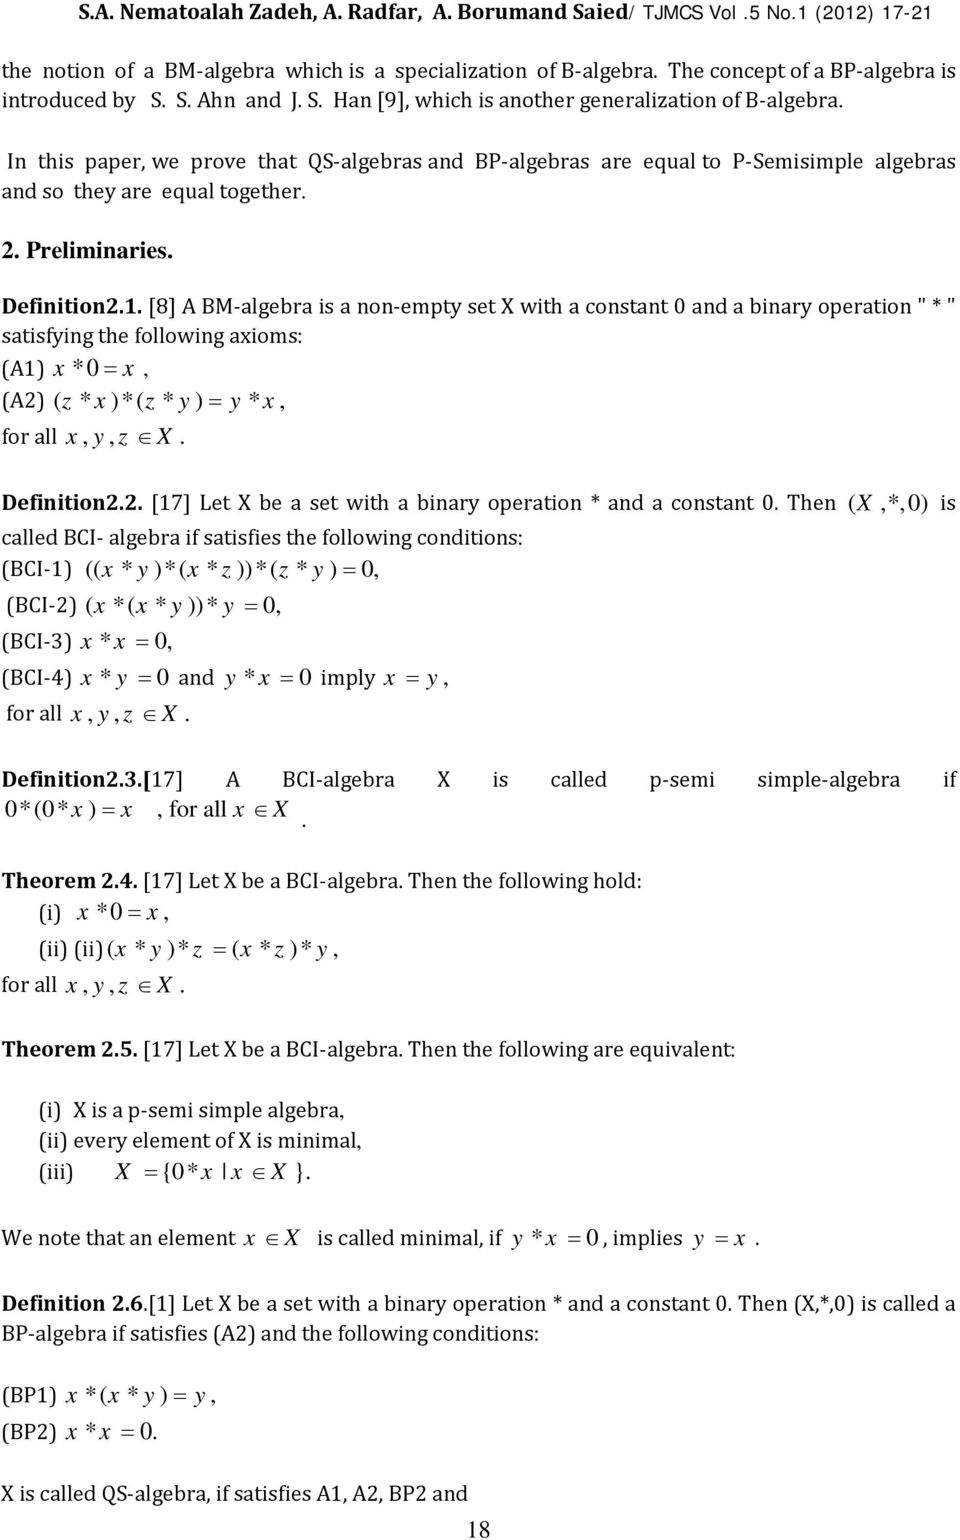 "[8] A BM-algebra is a non-empty set X with a constant 0 and a binary operation "" * "" satisfying the following axioms: (A1) x *0= x, (A2) ( z * x)*( z * y) = y * x, Definition2.2. [17] Let X be a set with a binary operation * and a constant 0."